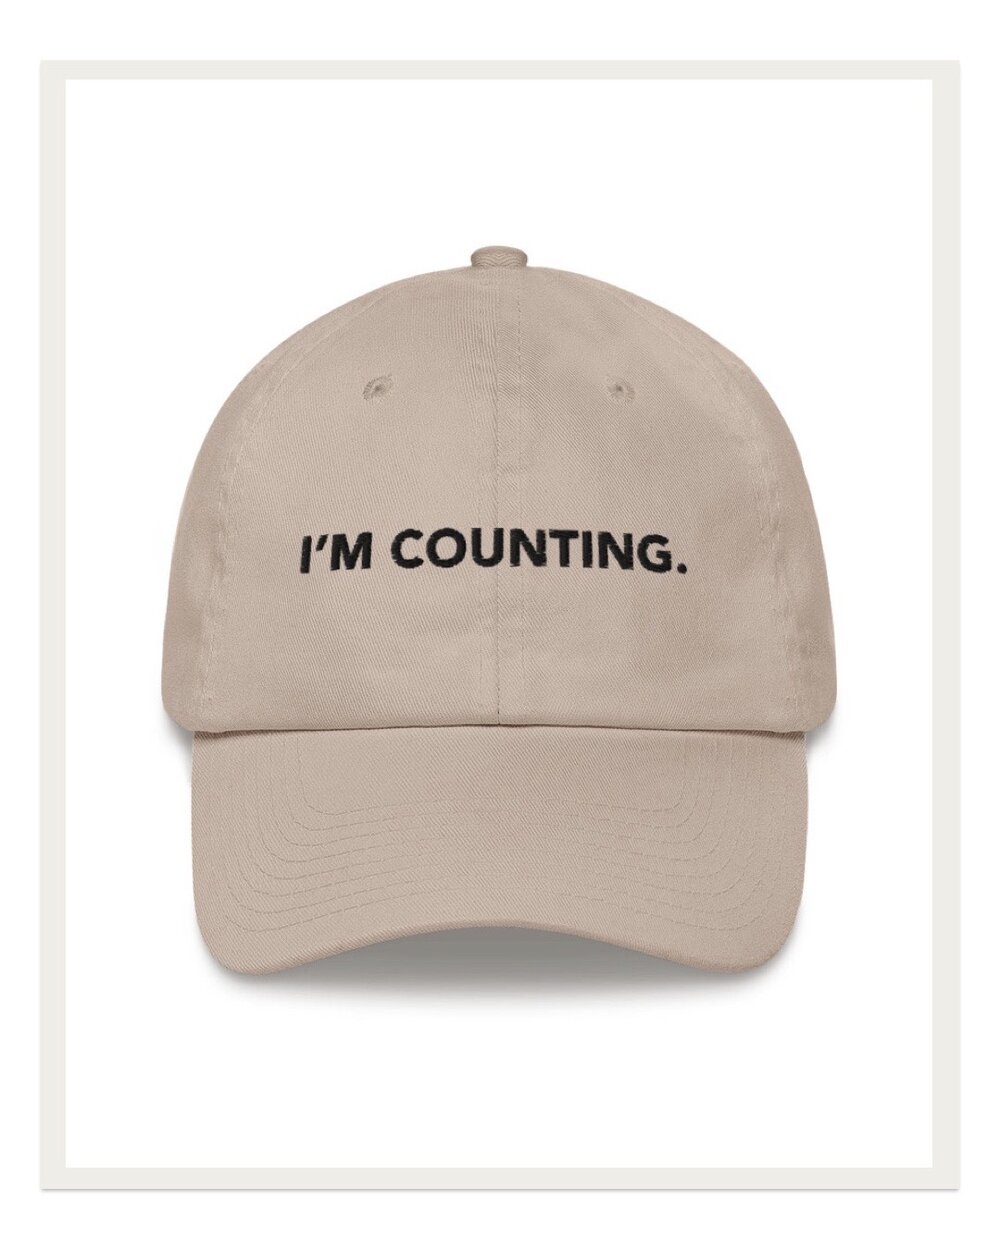 According to manrepeller.com baseball caps are the new t-shirts, and I couldn't agree more. The I'm Counting hat will ward off unnecessary comments and questions from husbands, children, and strangers alike. Sport it at home or in public for the ultimate maker experience.